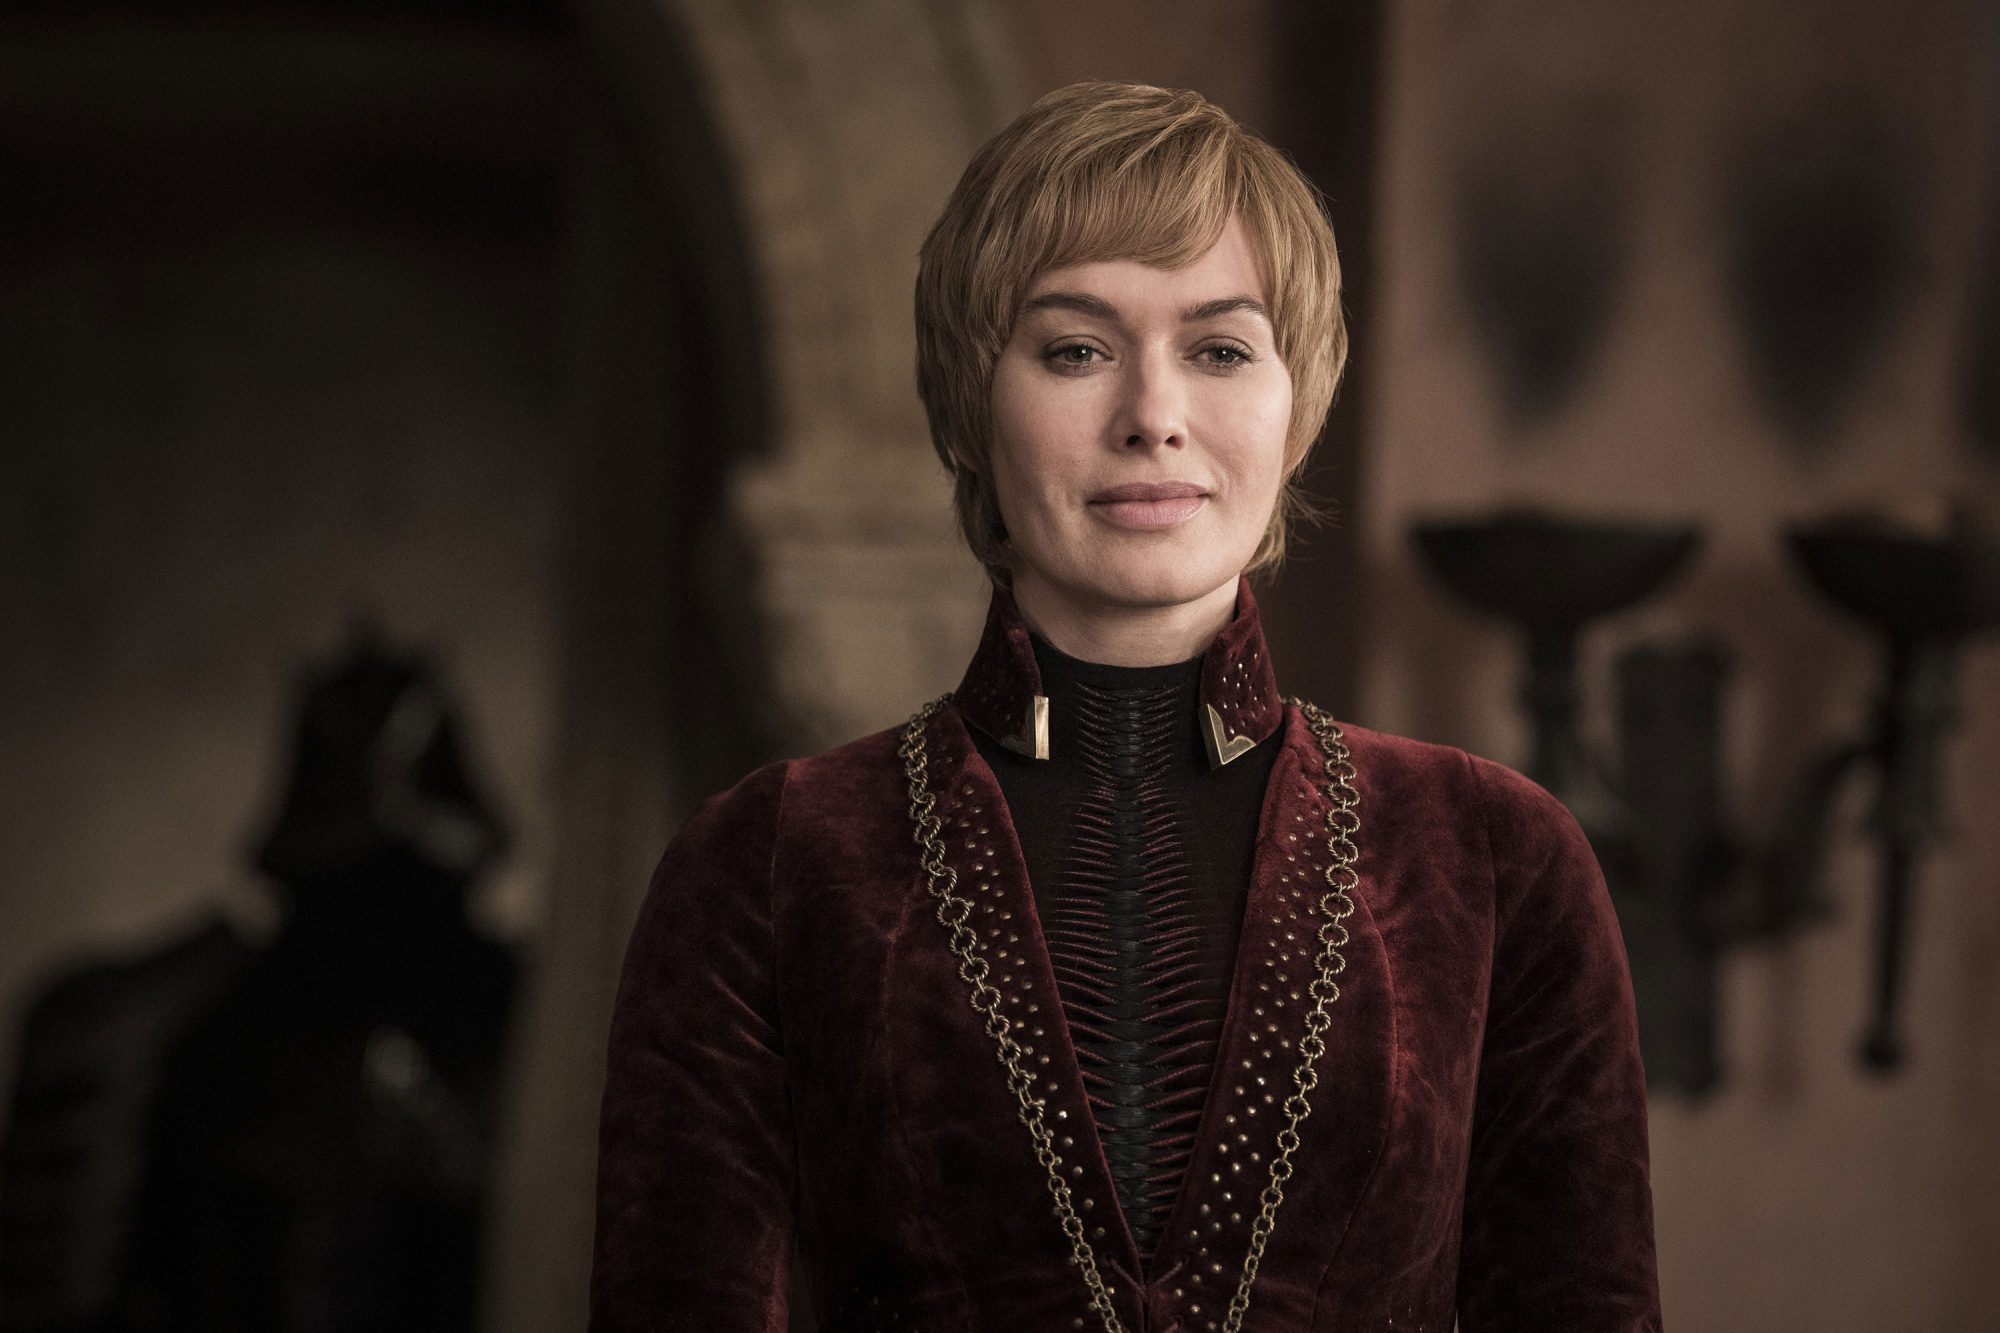 061919-cersei-game-of-thrones-lead.jpg